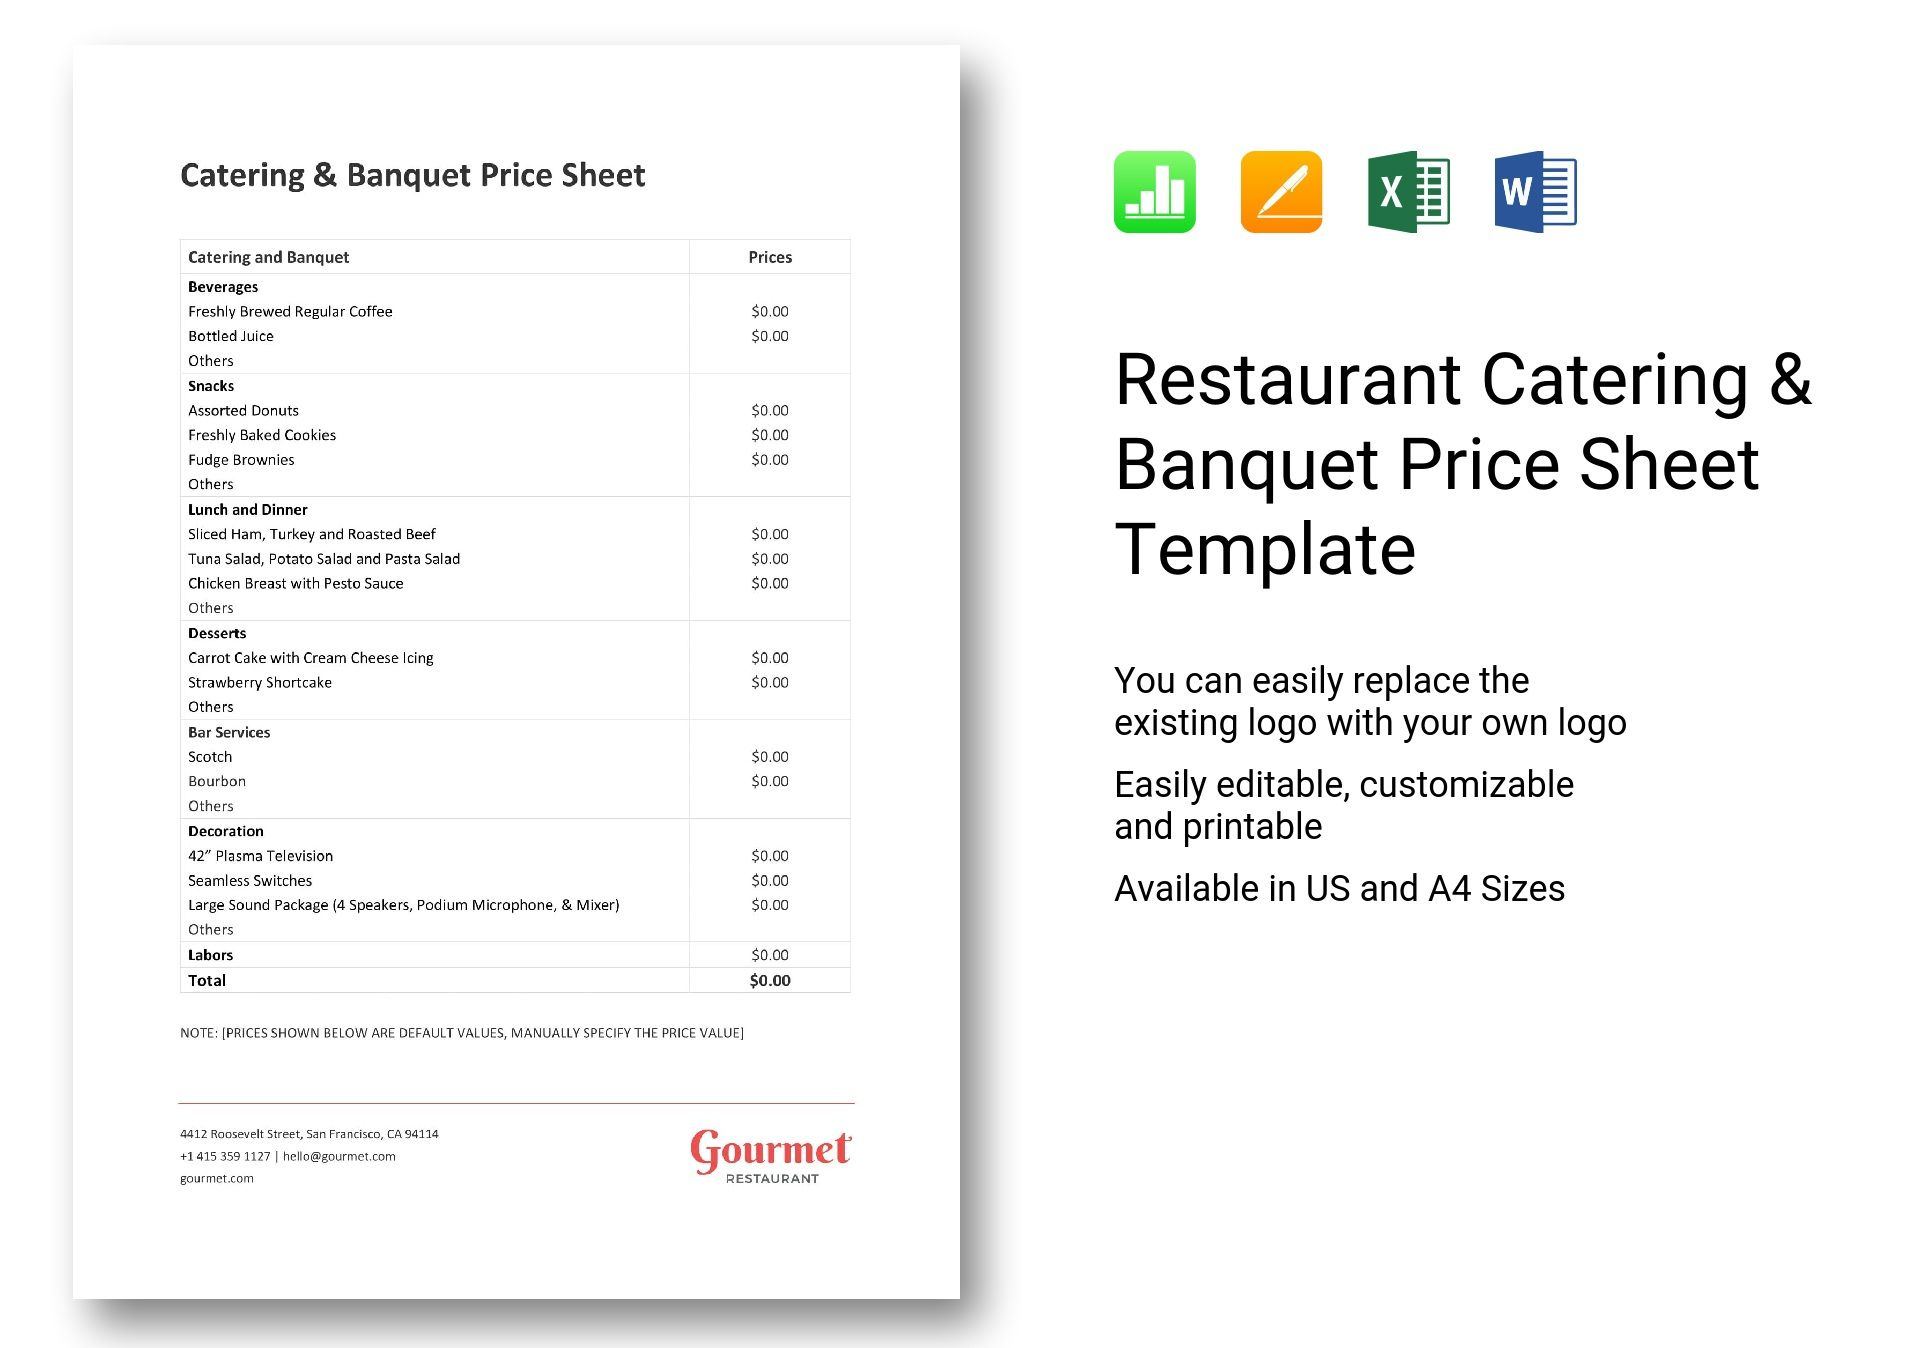 Restaurant Catering Amp Banquet Price Sheet Template In Word